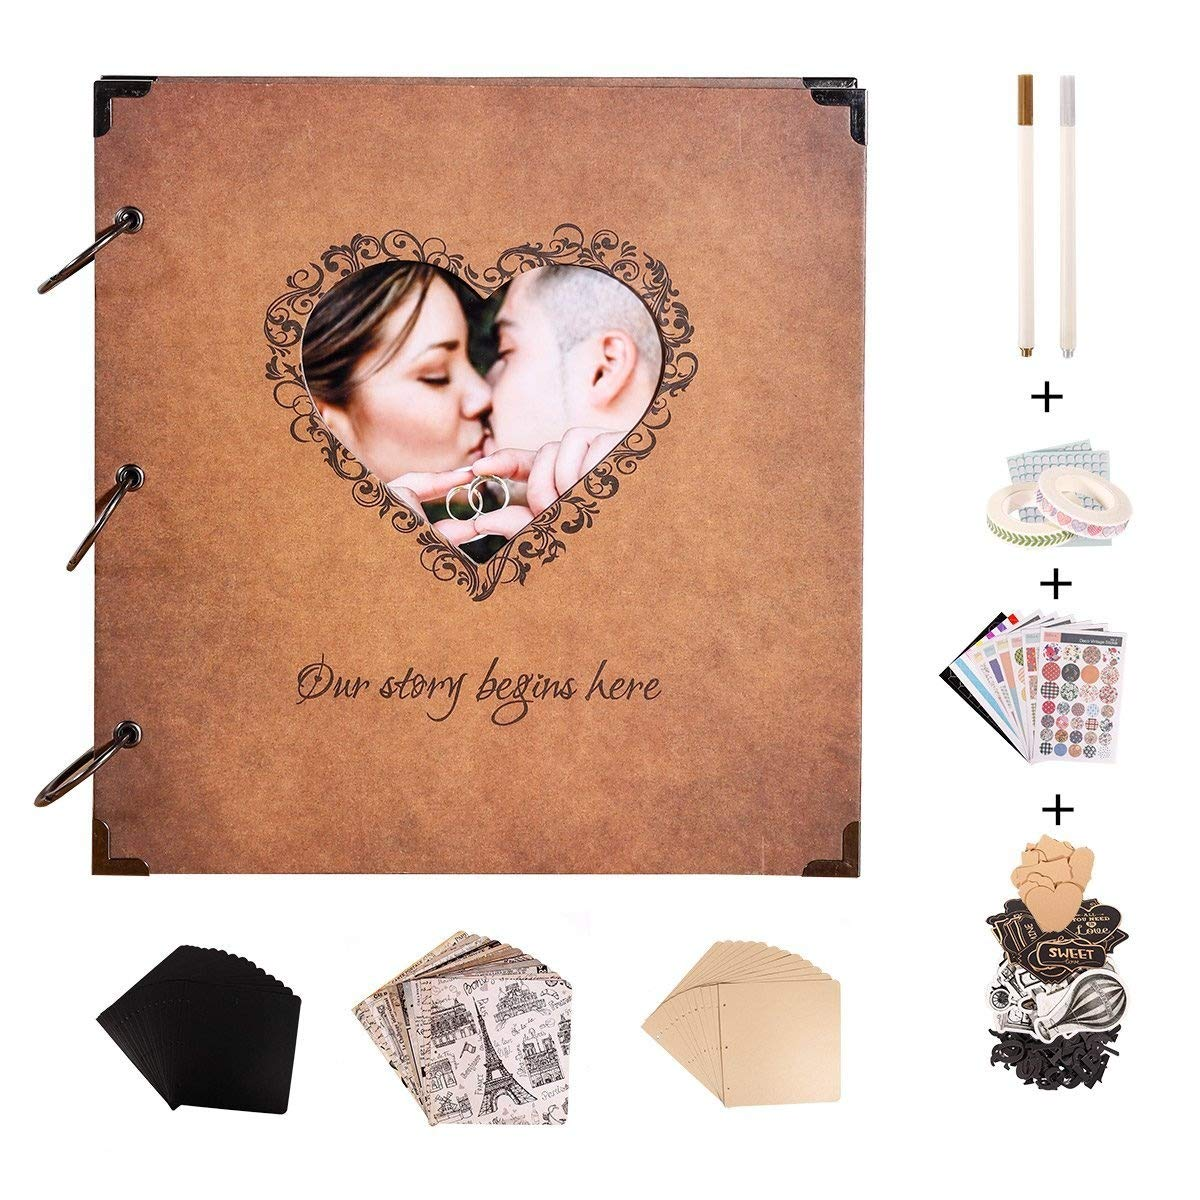 SICOHOME Vintage Scrapbook,10x10.5 Inch Wedding Scrapbook Album with Heart Photo Opening 4336978043